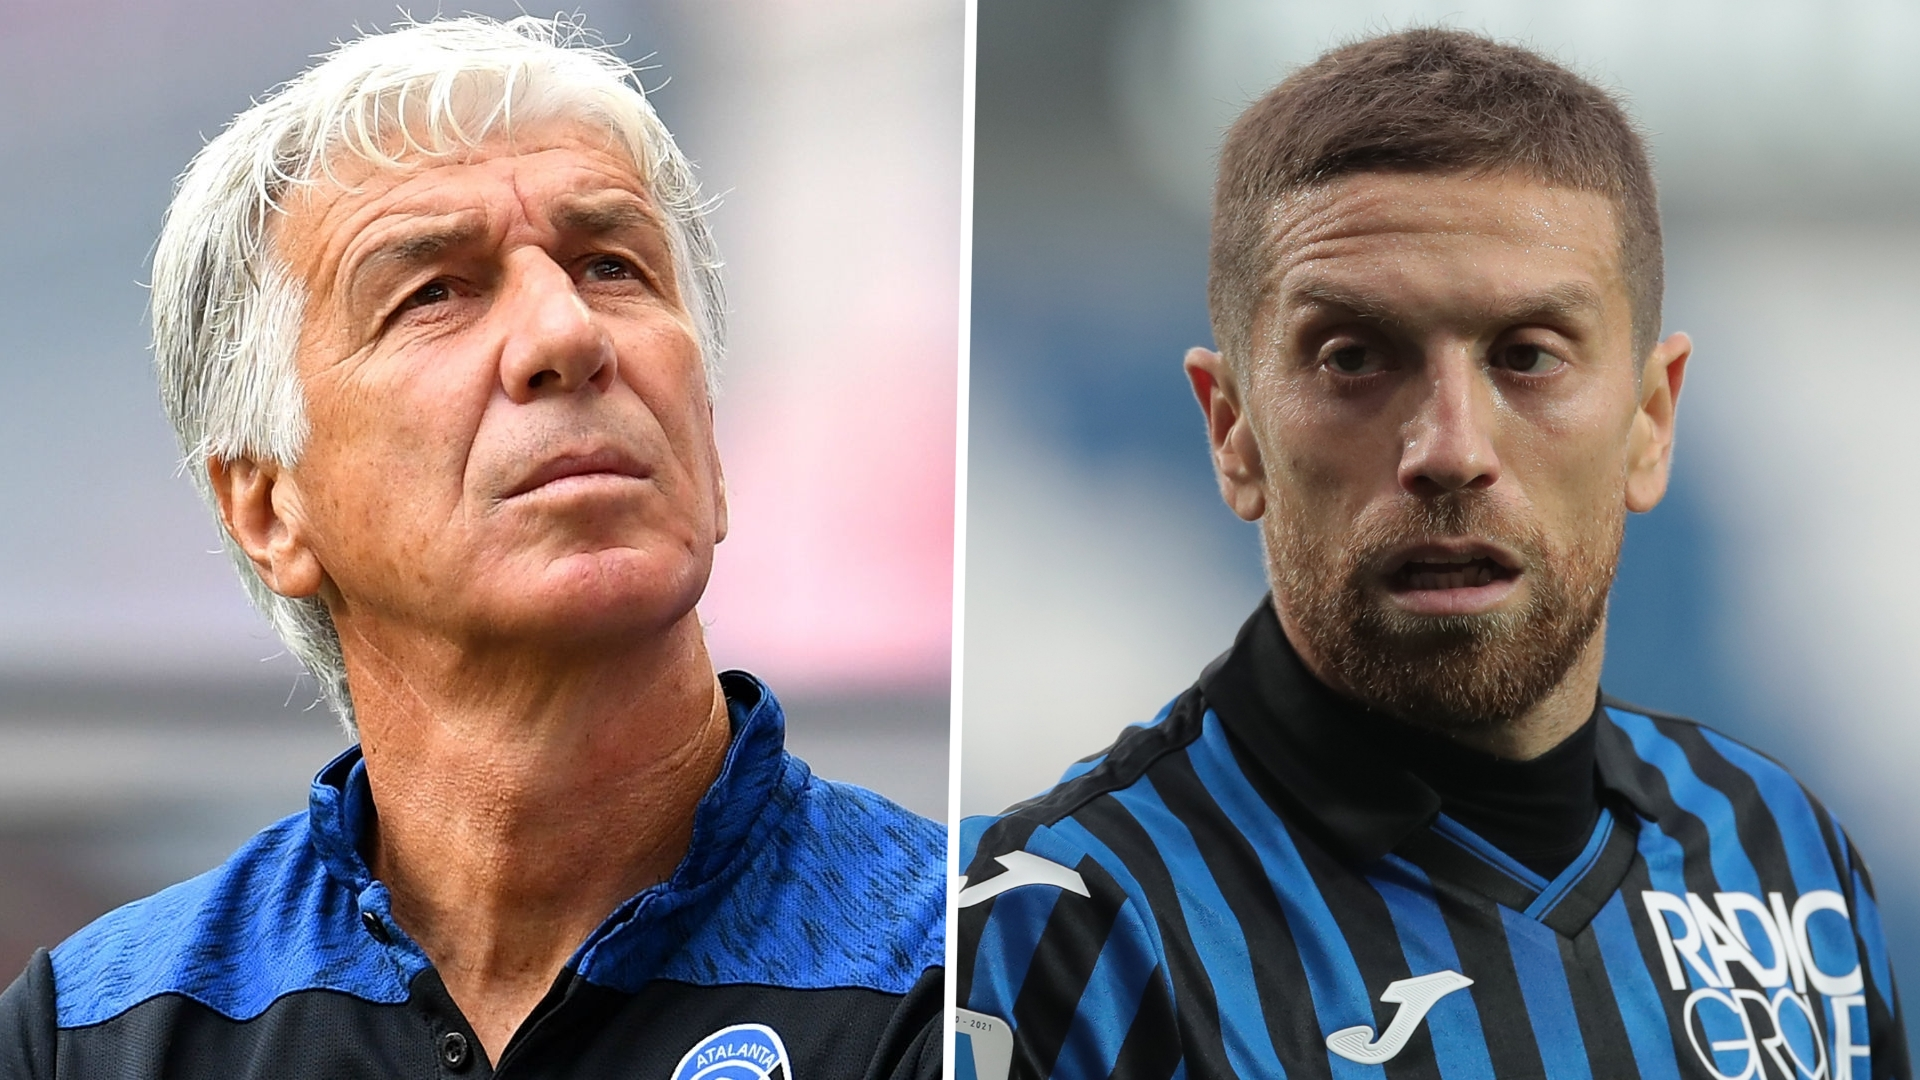 Tension between Gasperini and Gomez threatening to derail Atalanta's Champions League hopes